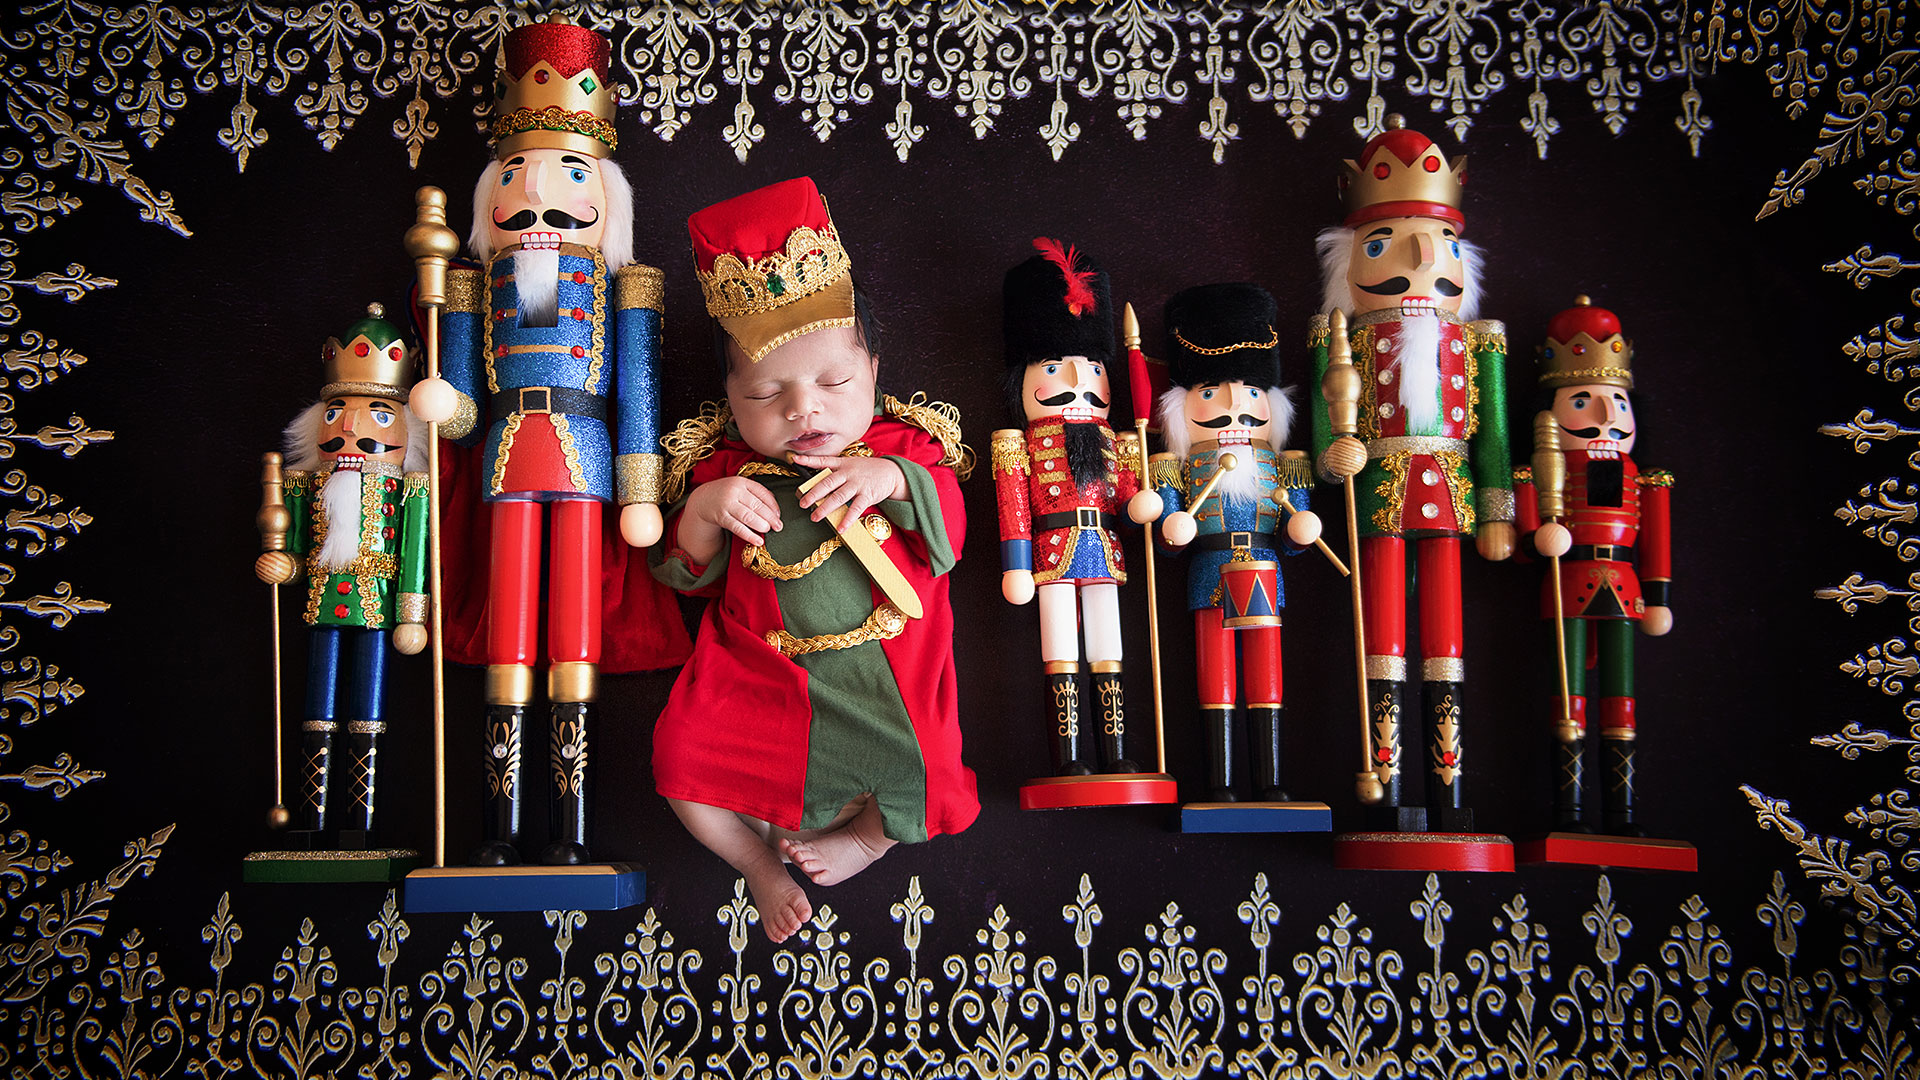 Littlest Nutcracker